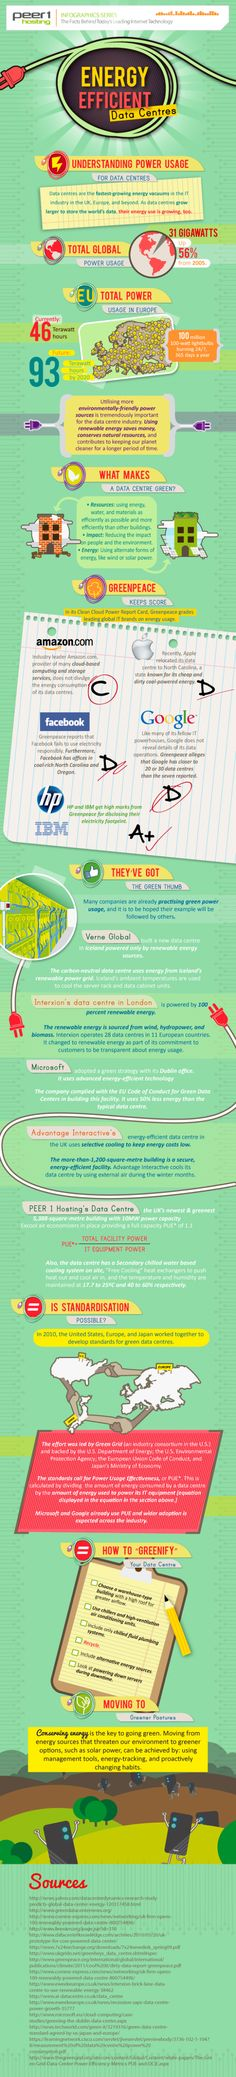 1000 images about energy efficiency in data center on for Facts about energy efficiency